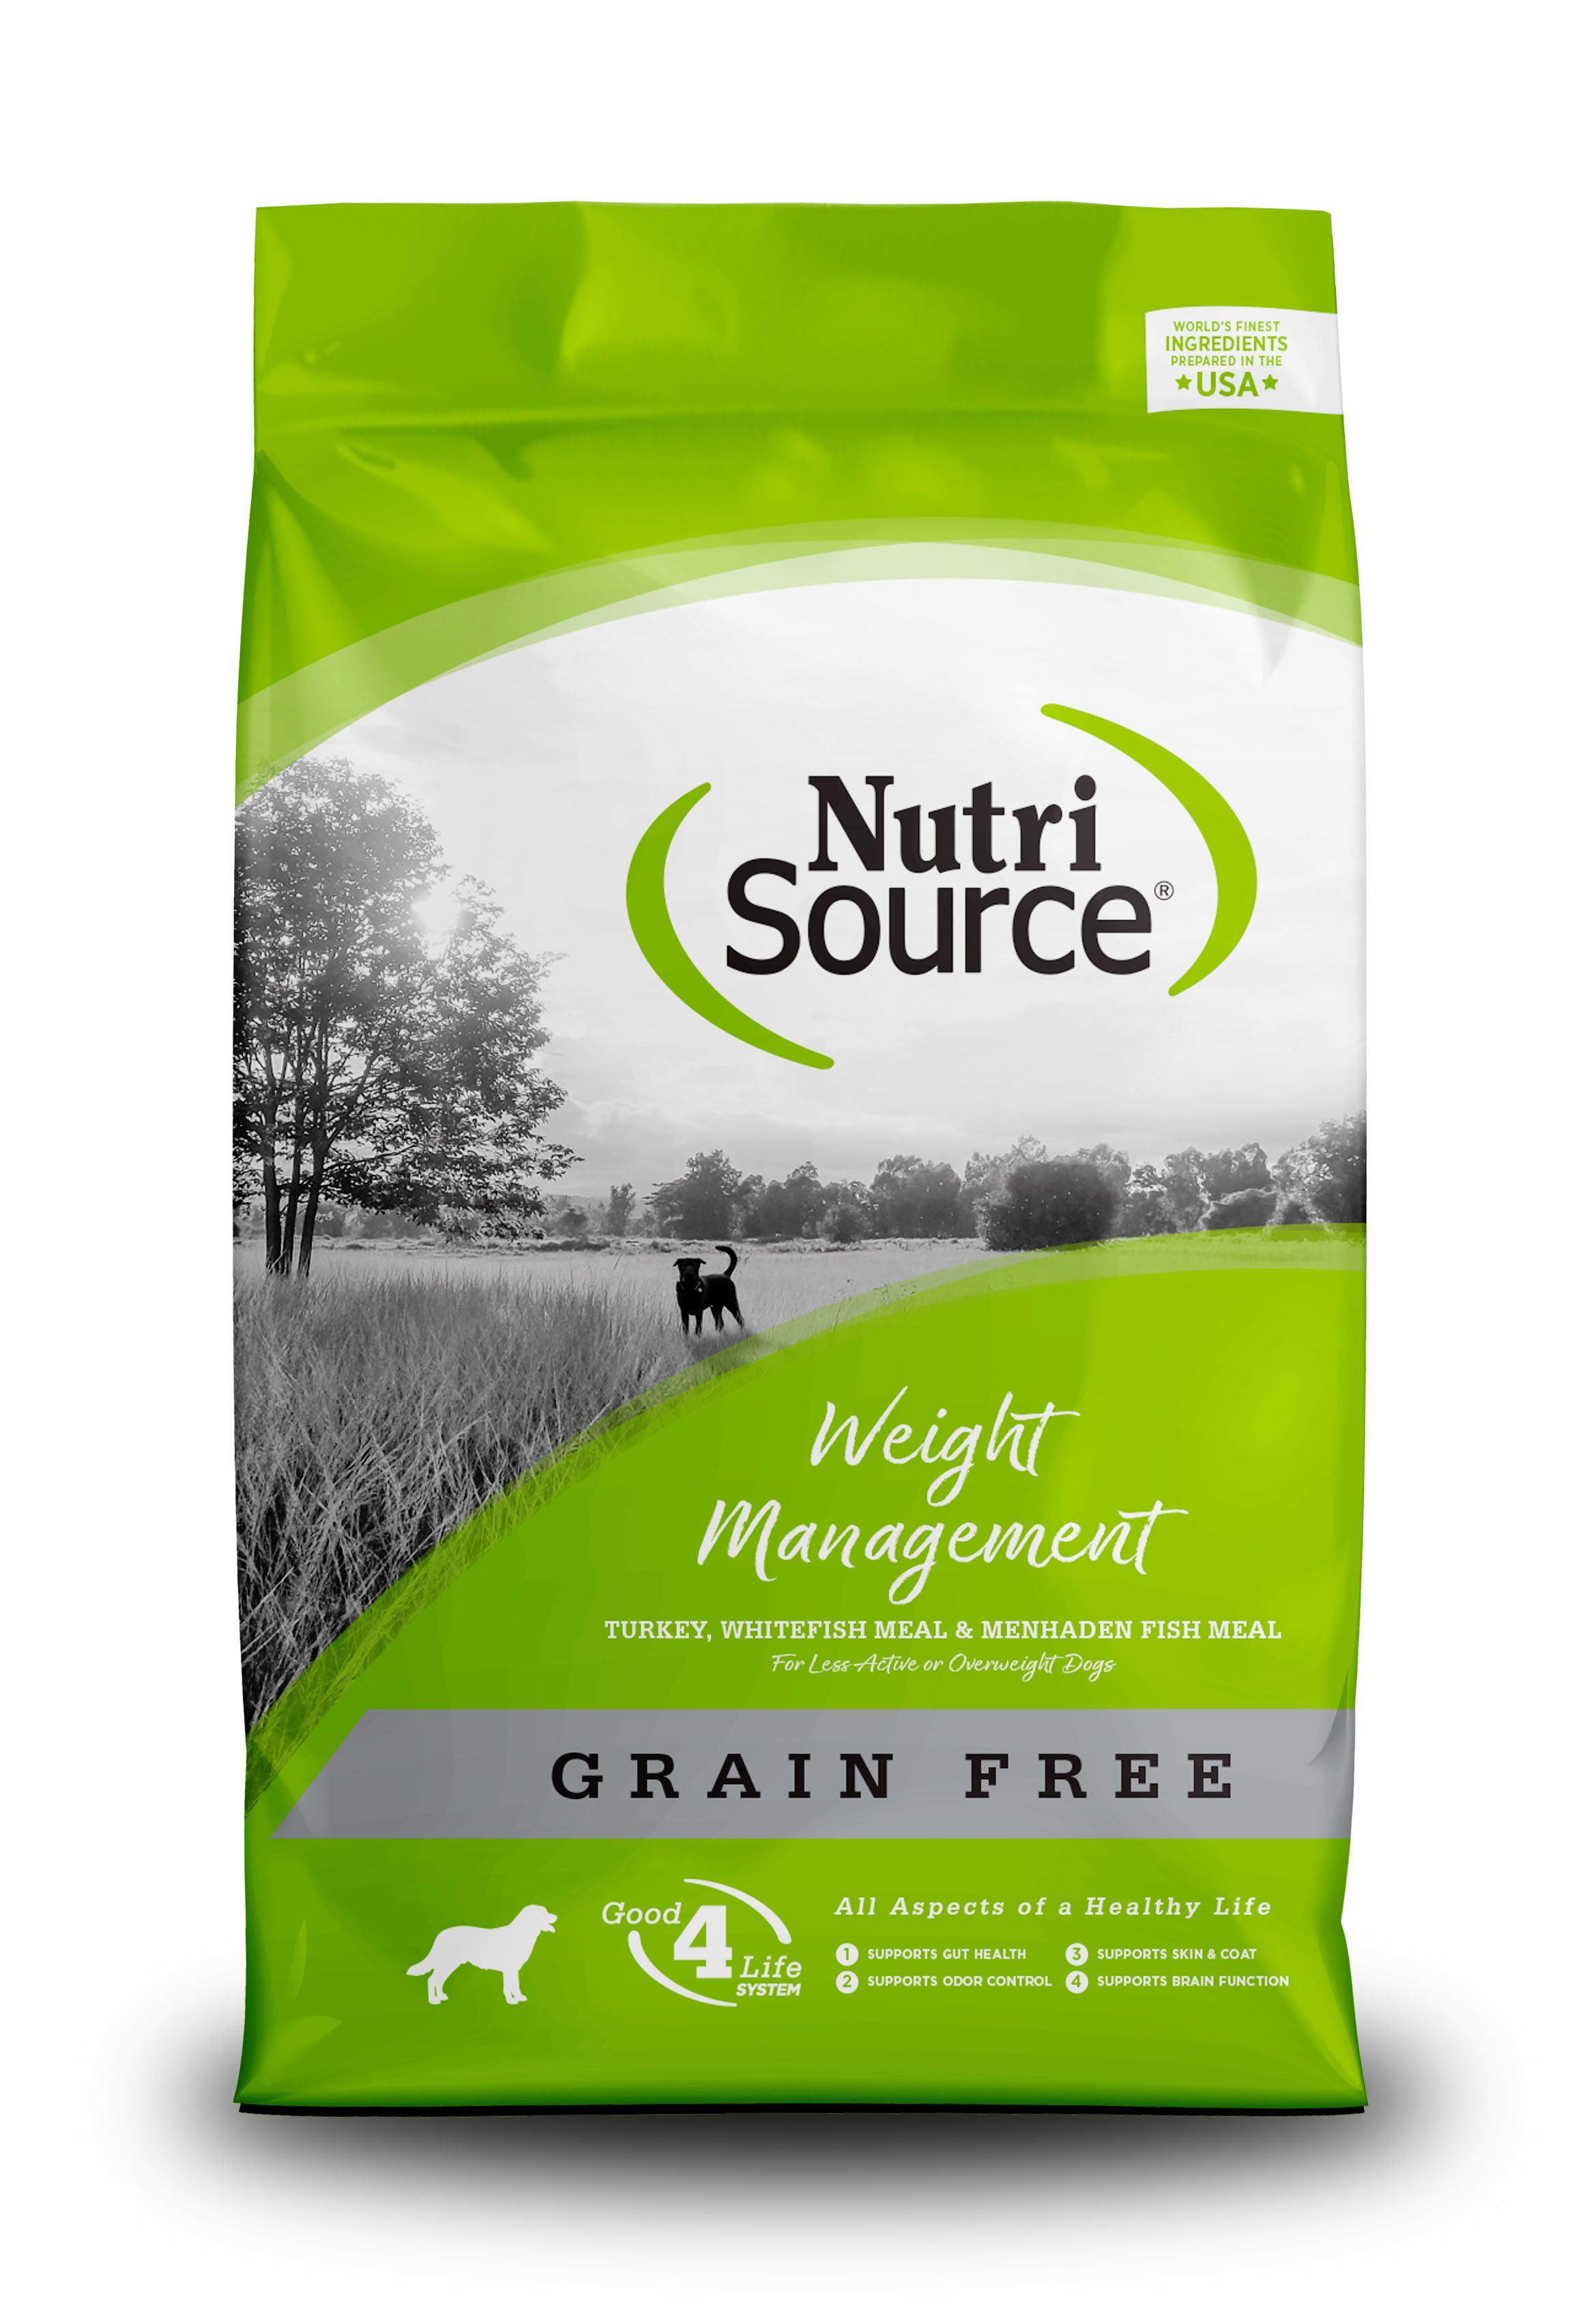 NutriSource Grain Free Weight Management Dry Dog Food, 5-lb